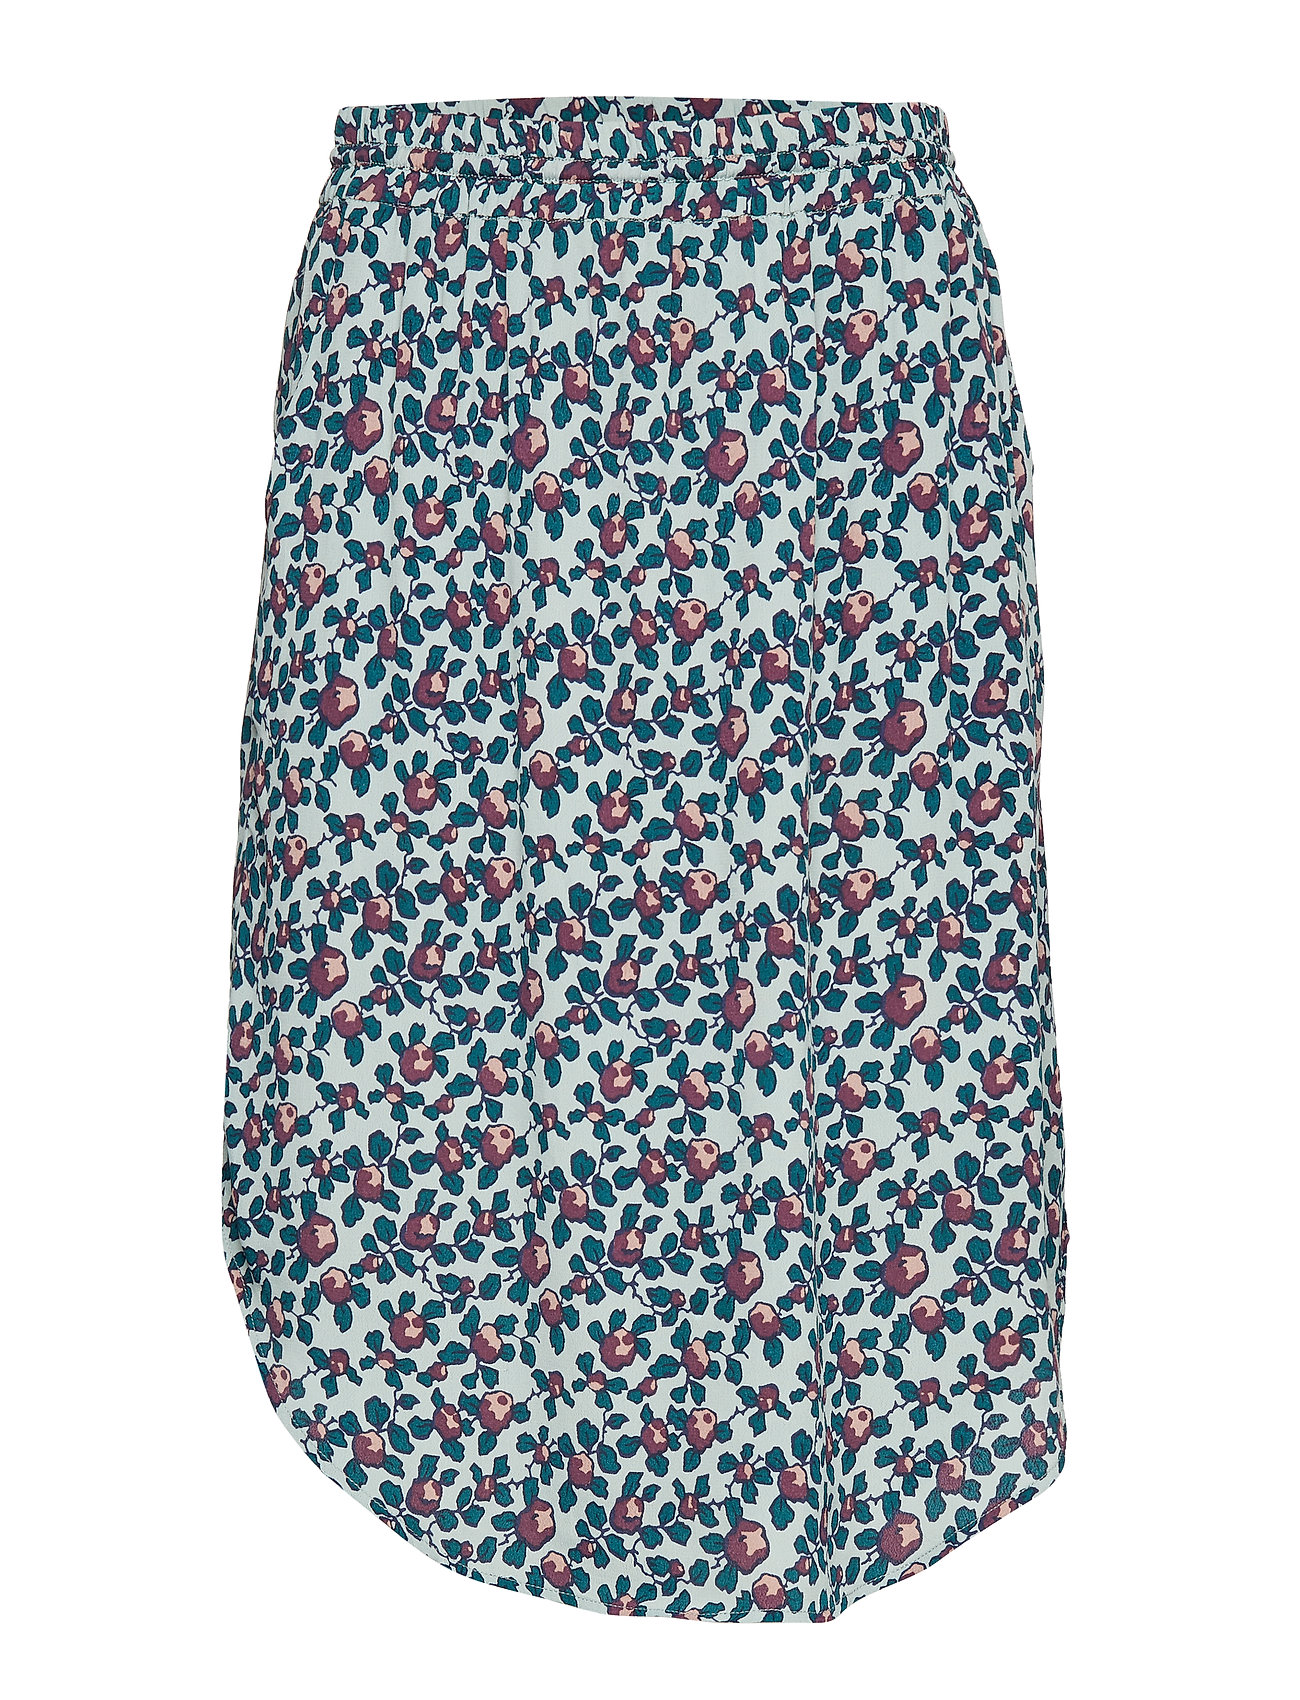 Noa Noa Skirt - PRINT GREEN